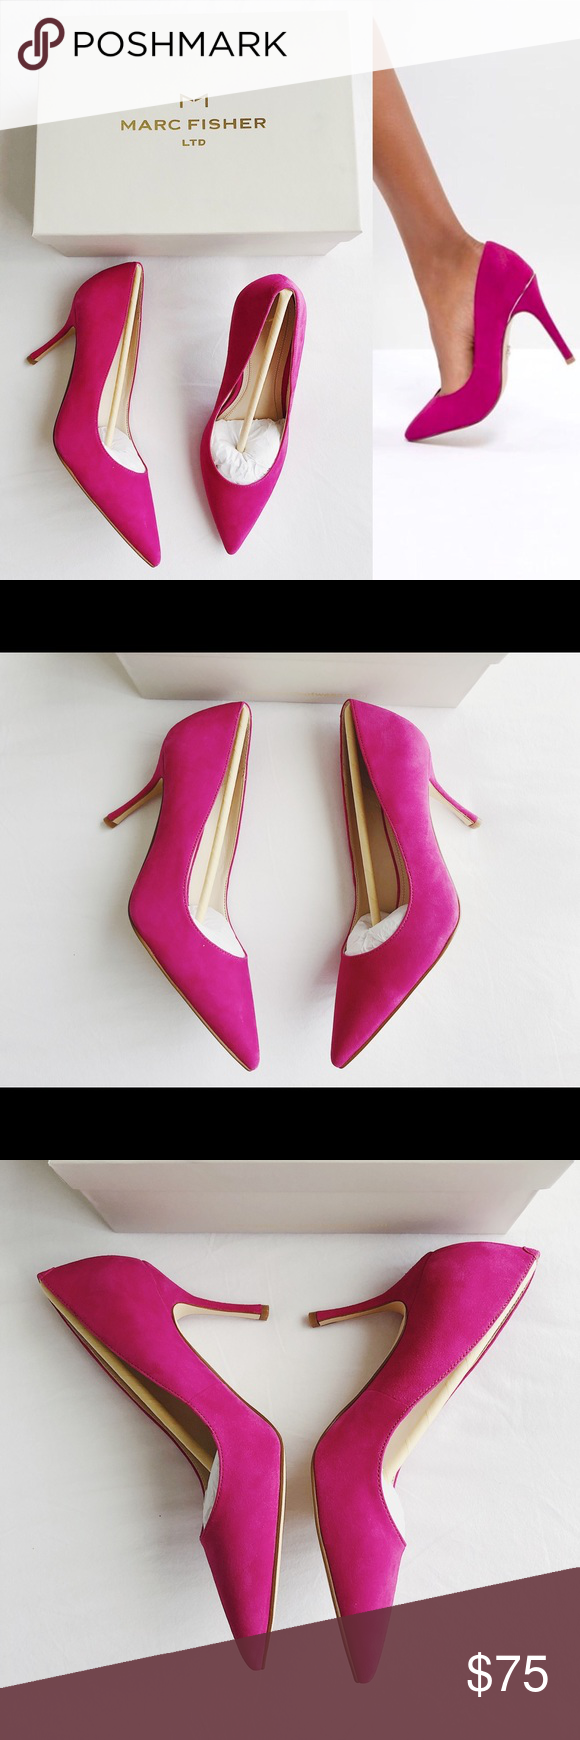 10c0df3fef7 New MARC FISHER LTD Carter Suede Pointed Toe Pumps Marc Fisher Ltd  Carter   Suede